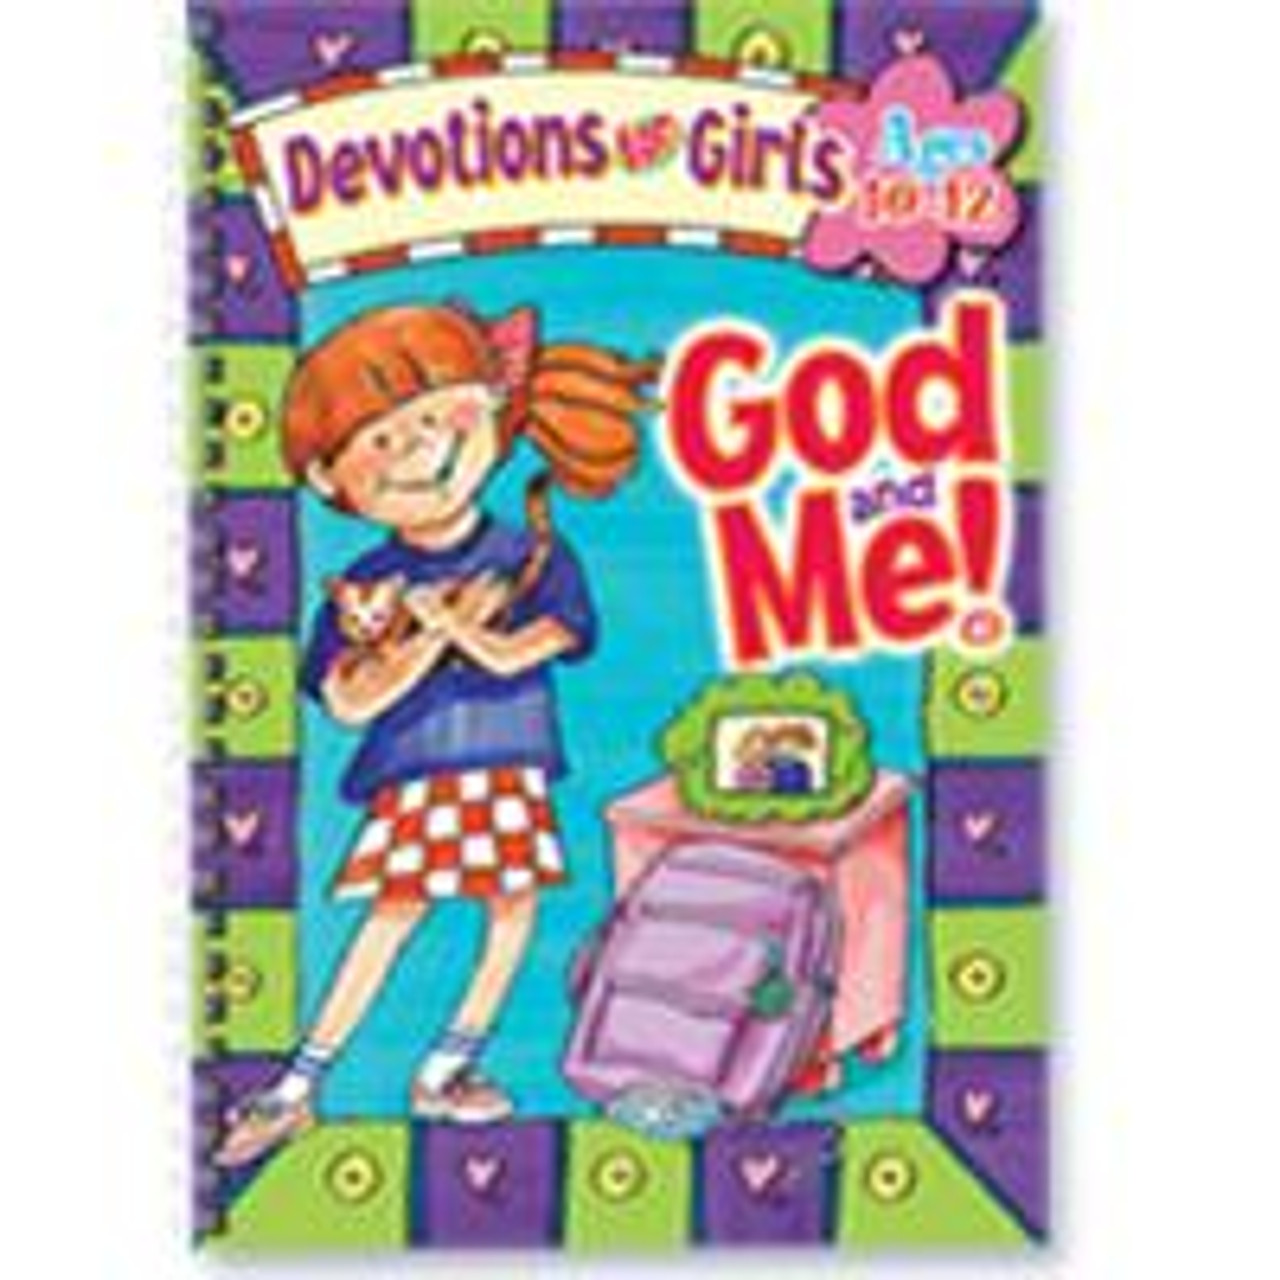 God and Me! Ages 10-12